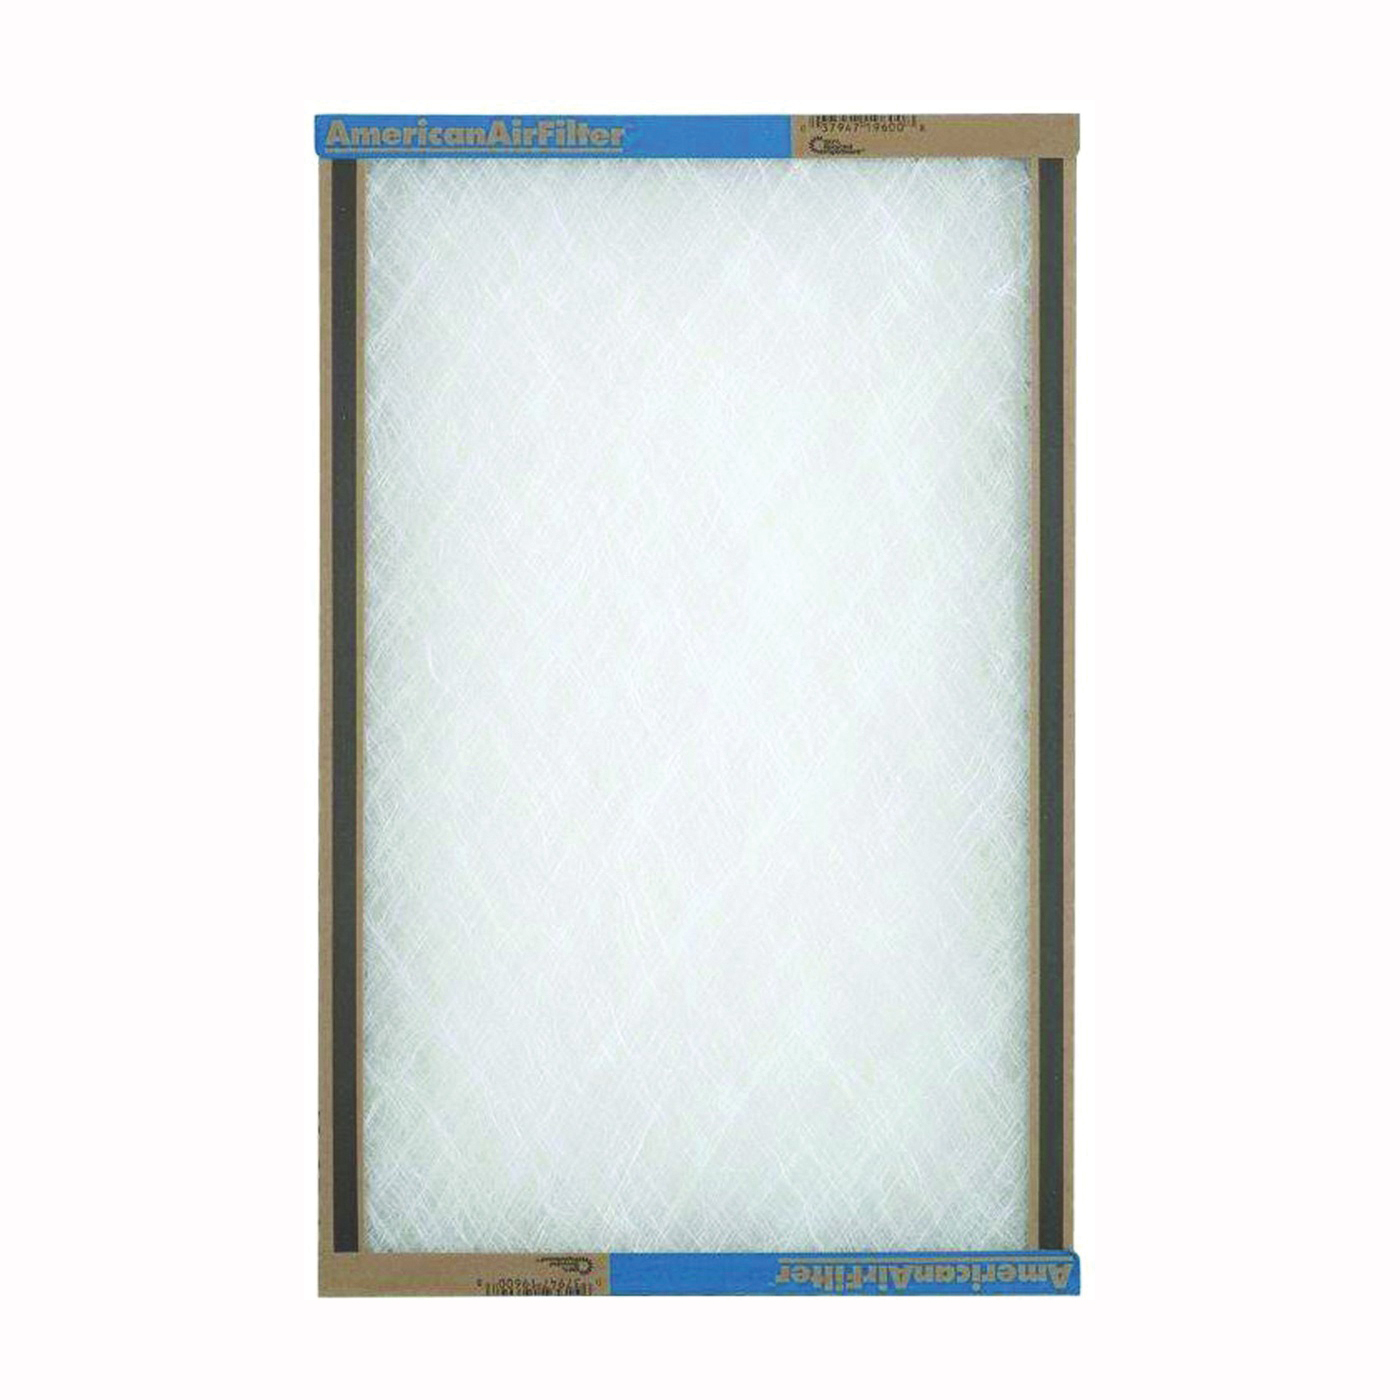 Picture of AAF 114201 Panel Filter, 20 in L, 14 in W, Chipboard Frame